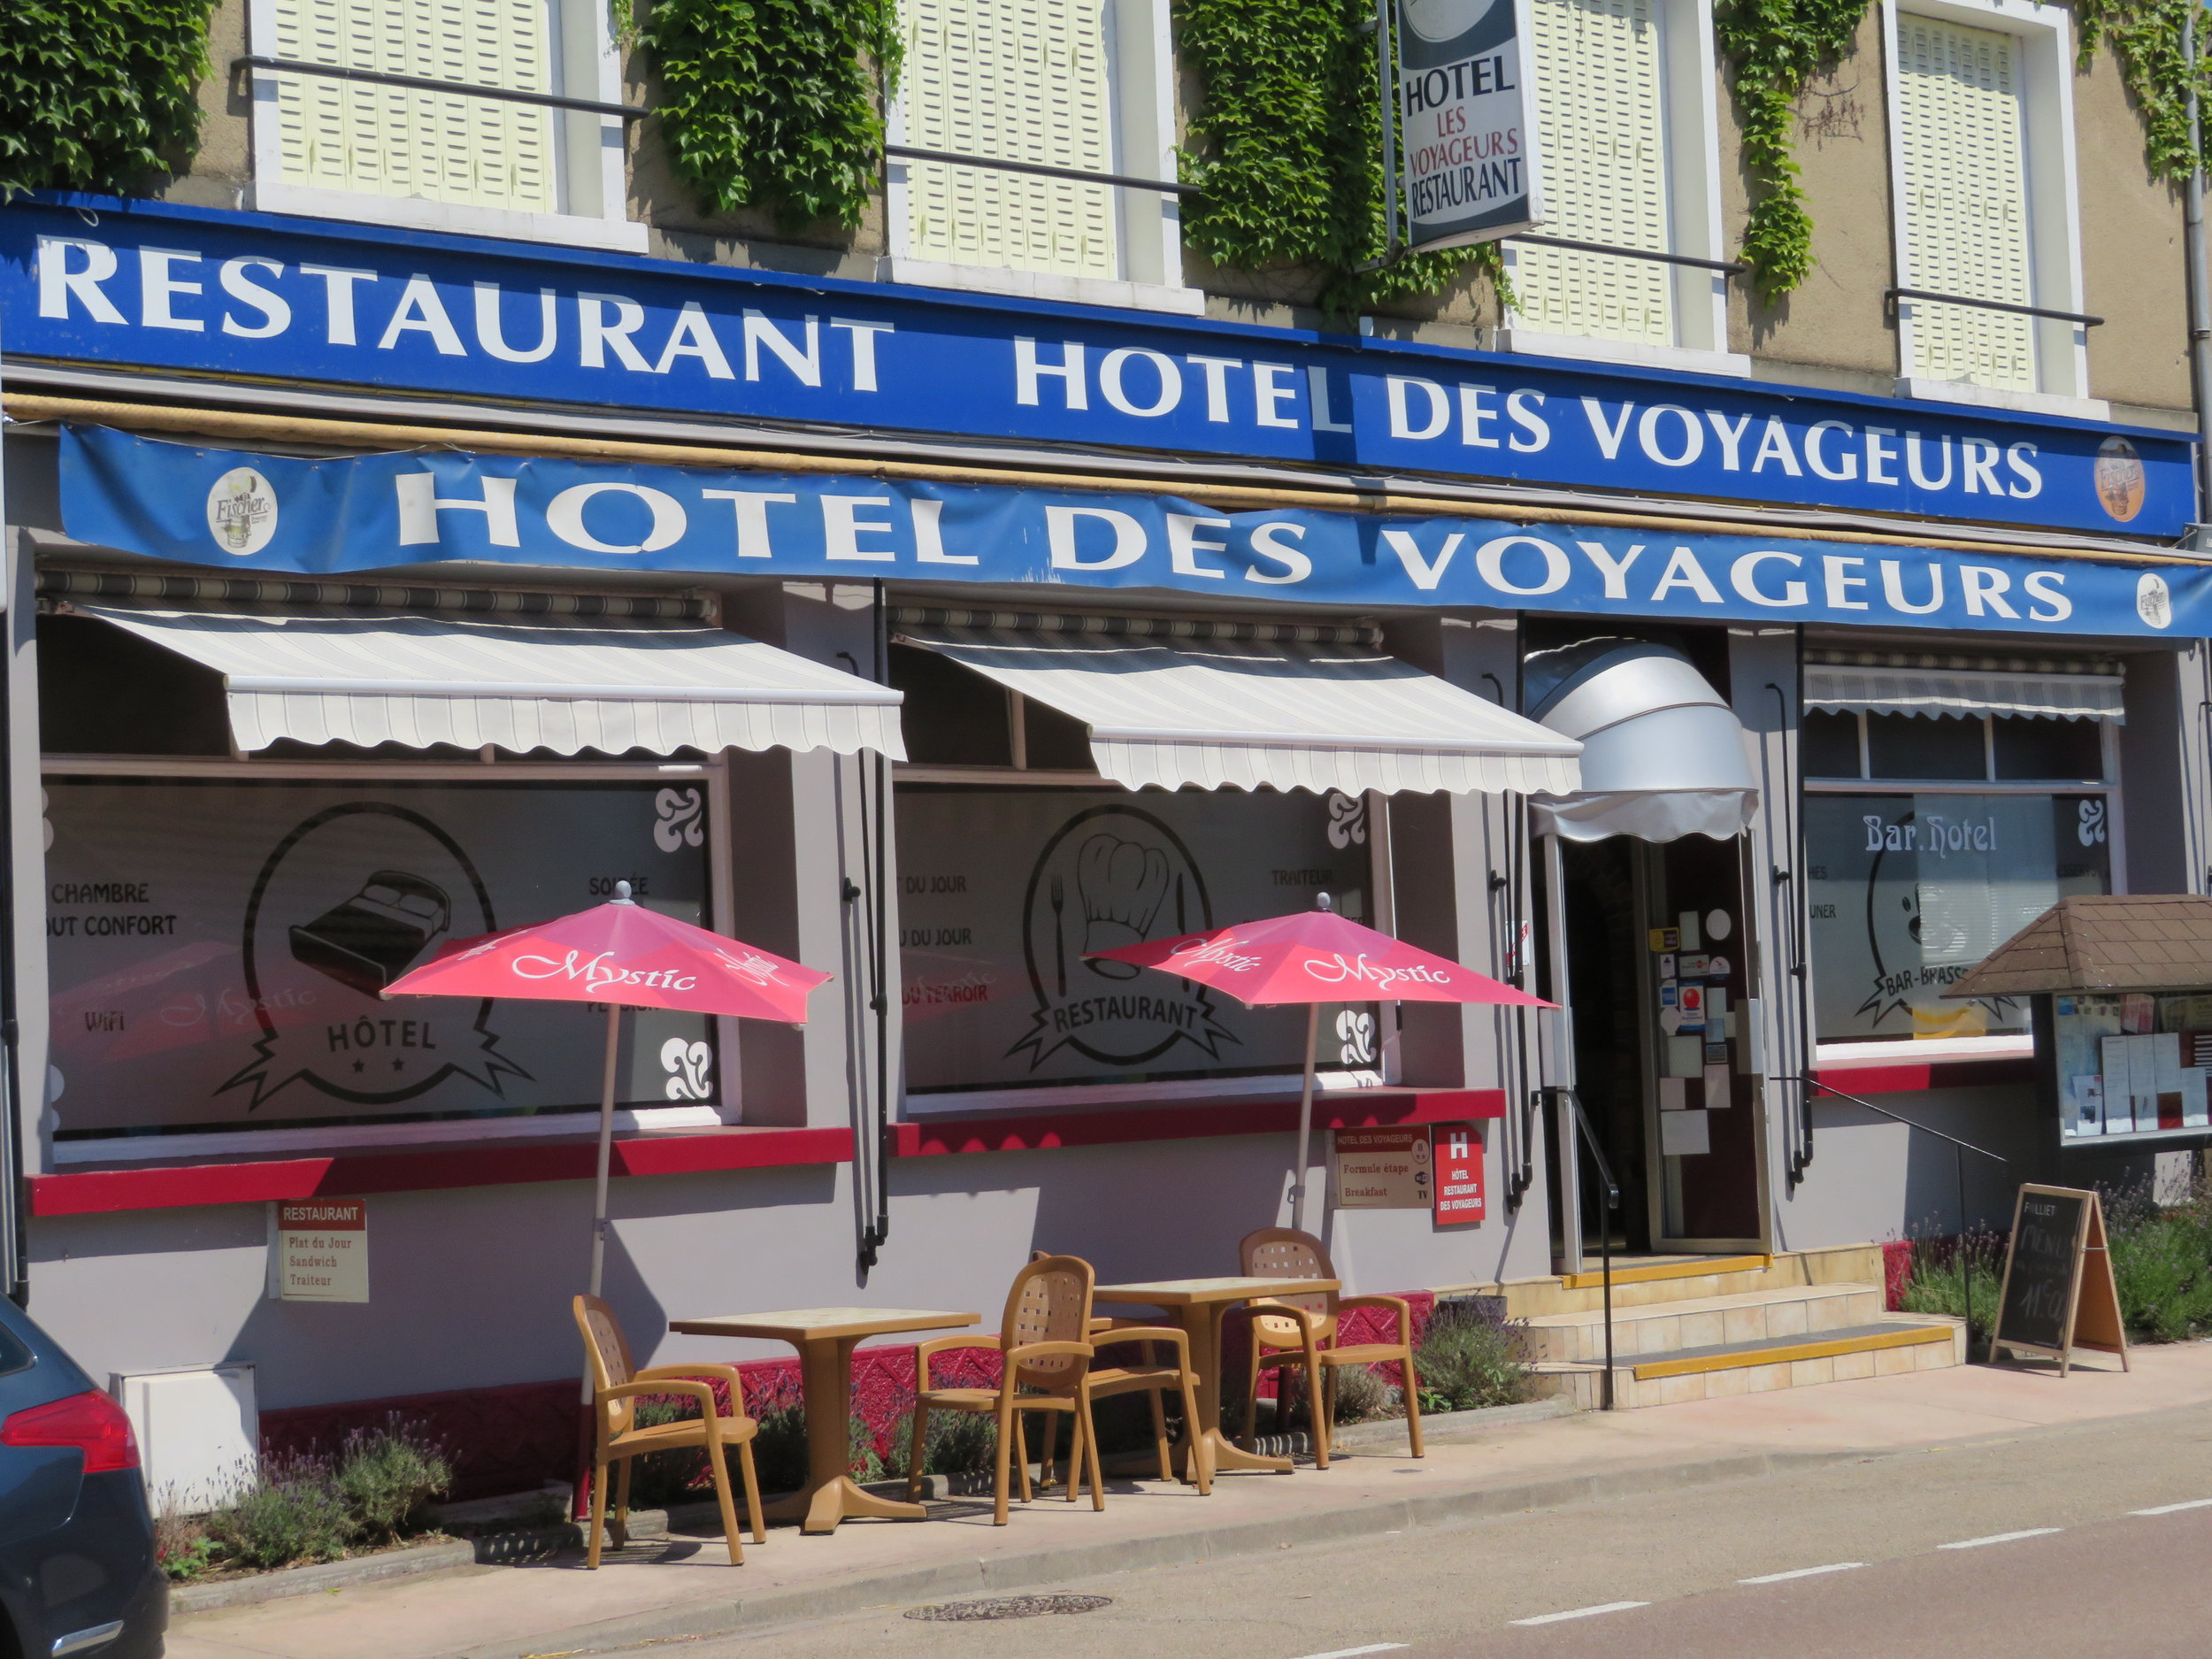 Hotel des Voyageurs was basic, but adequate